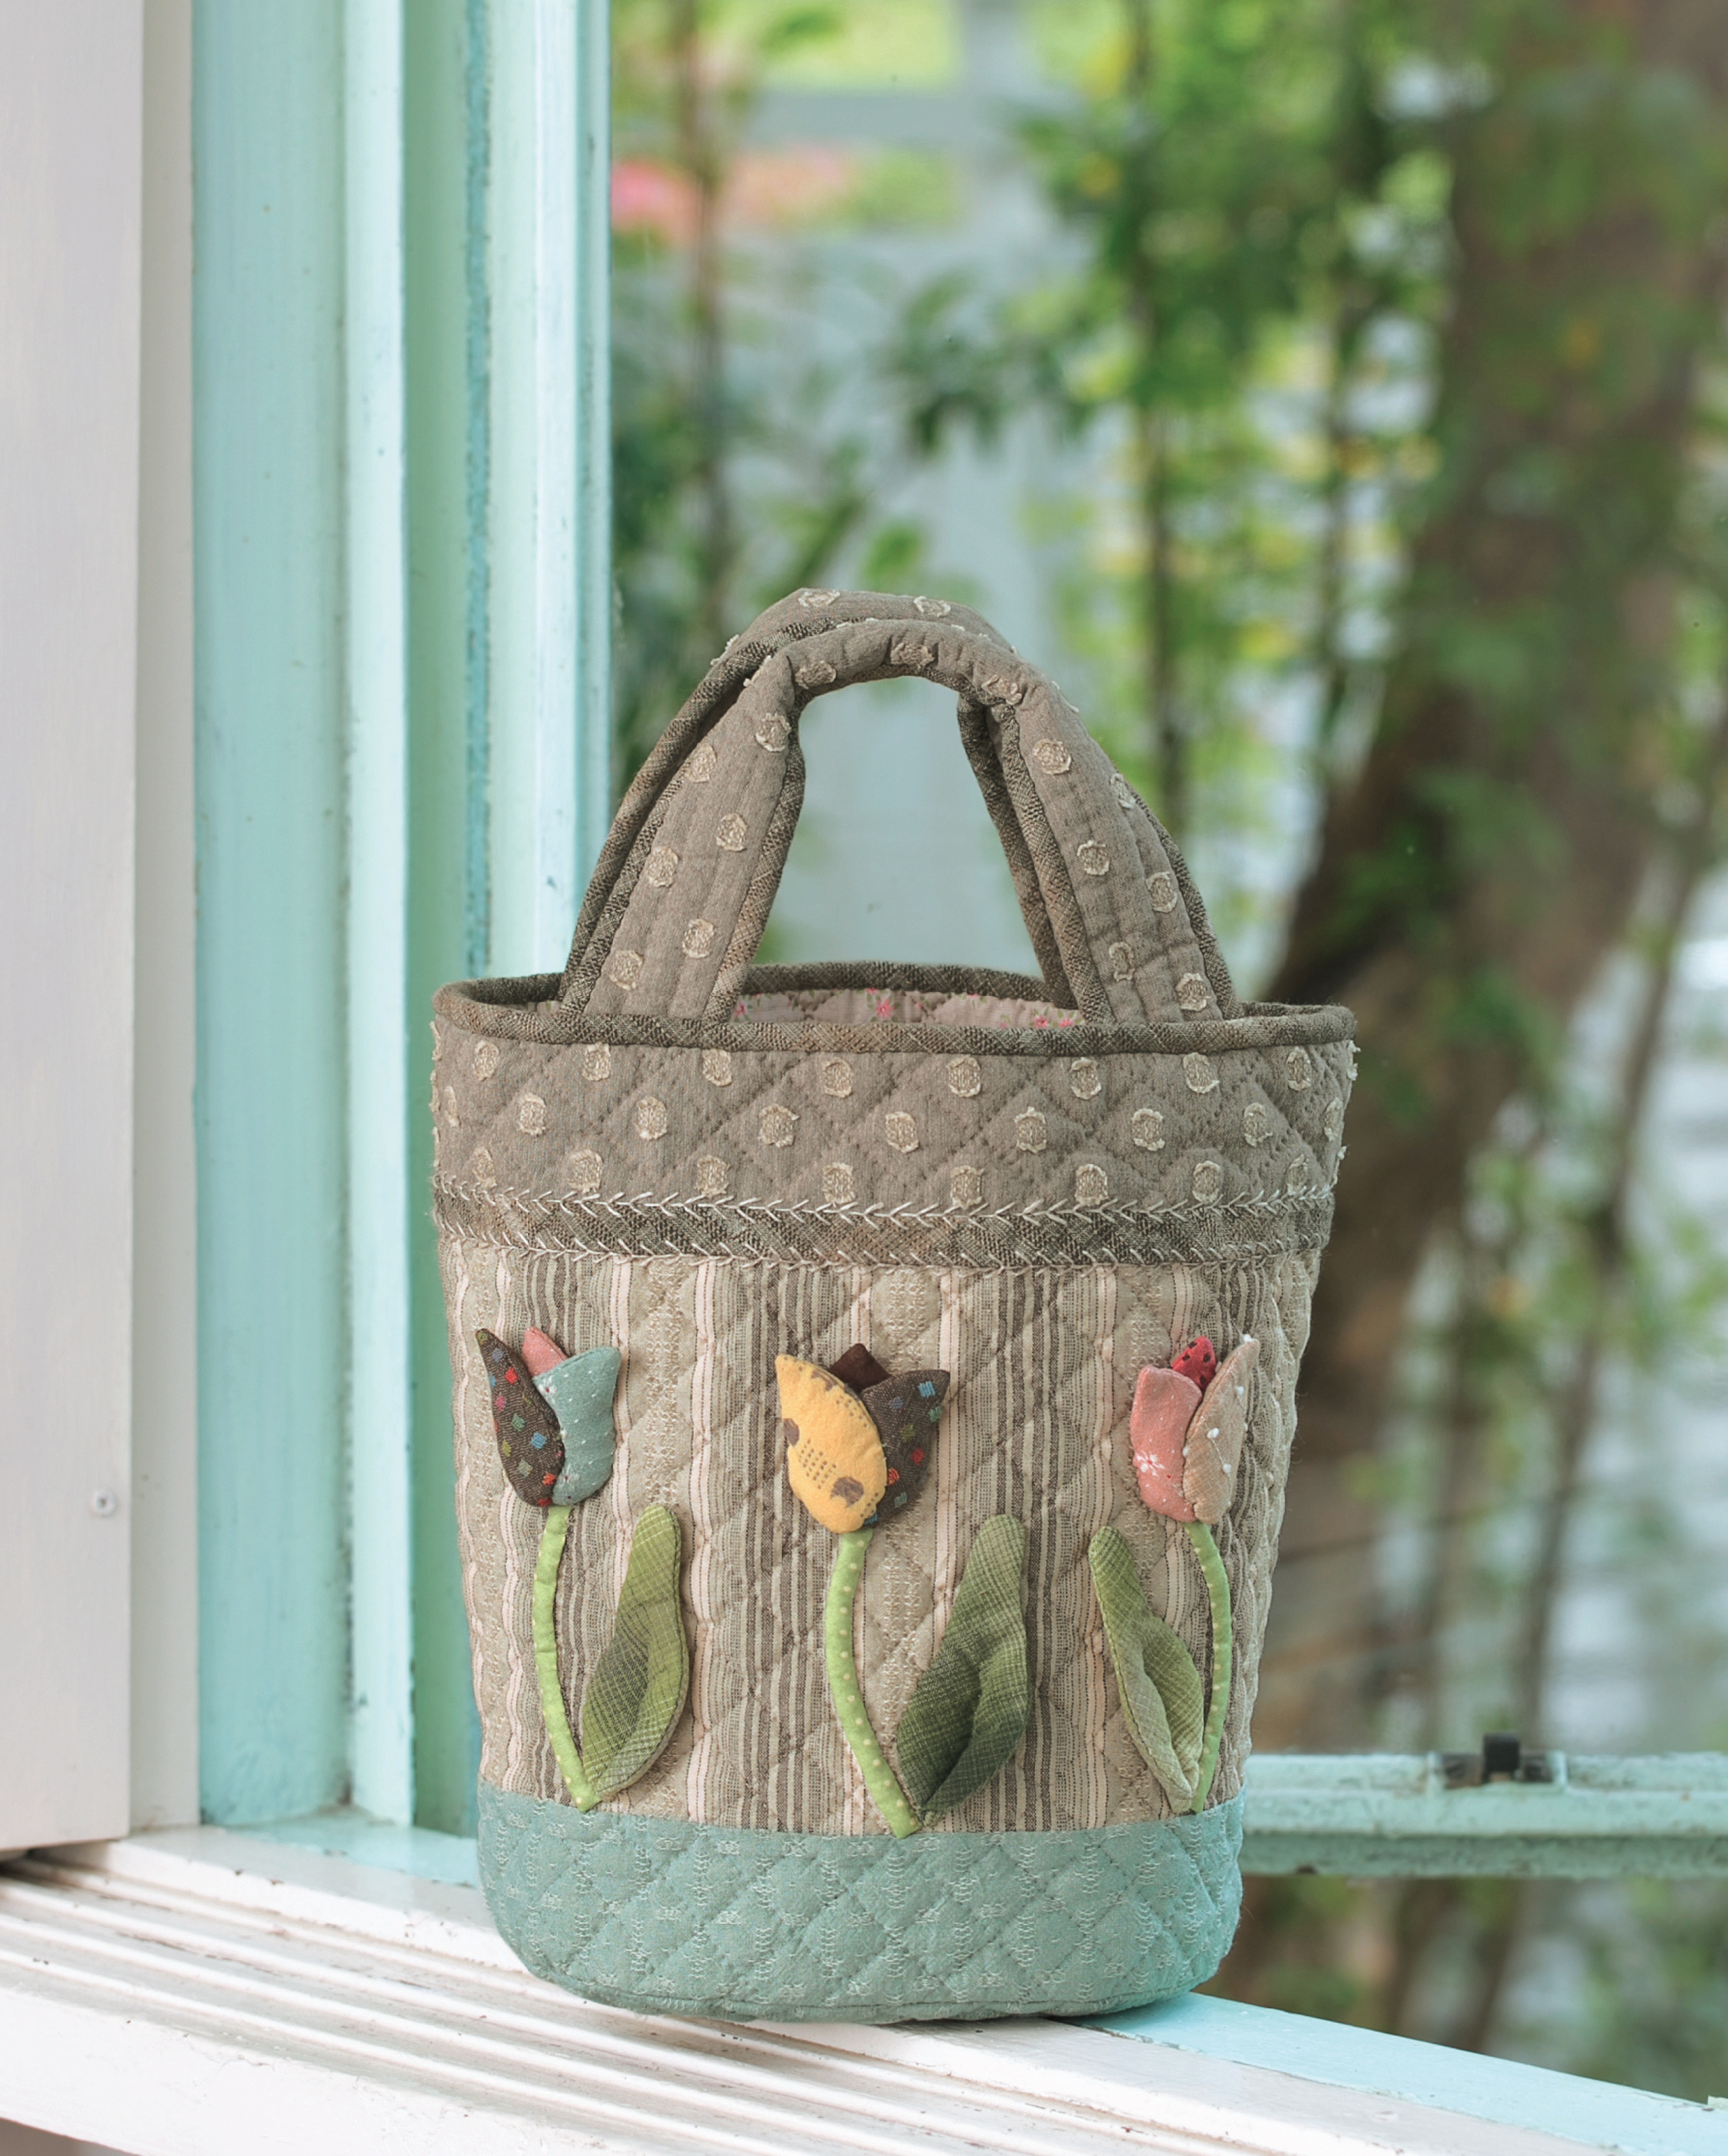 Quilted Bags and Gifts by Akemi Shibata